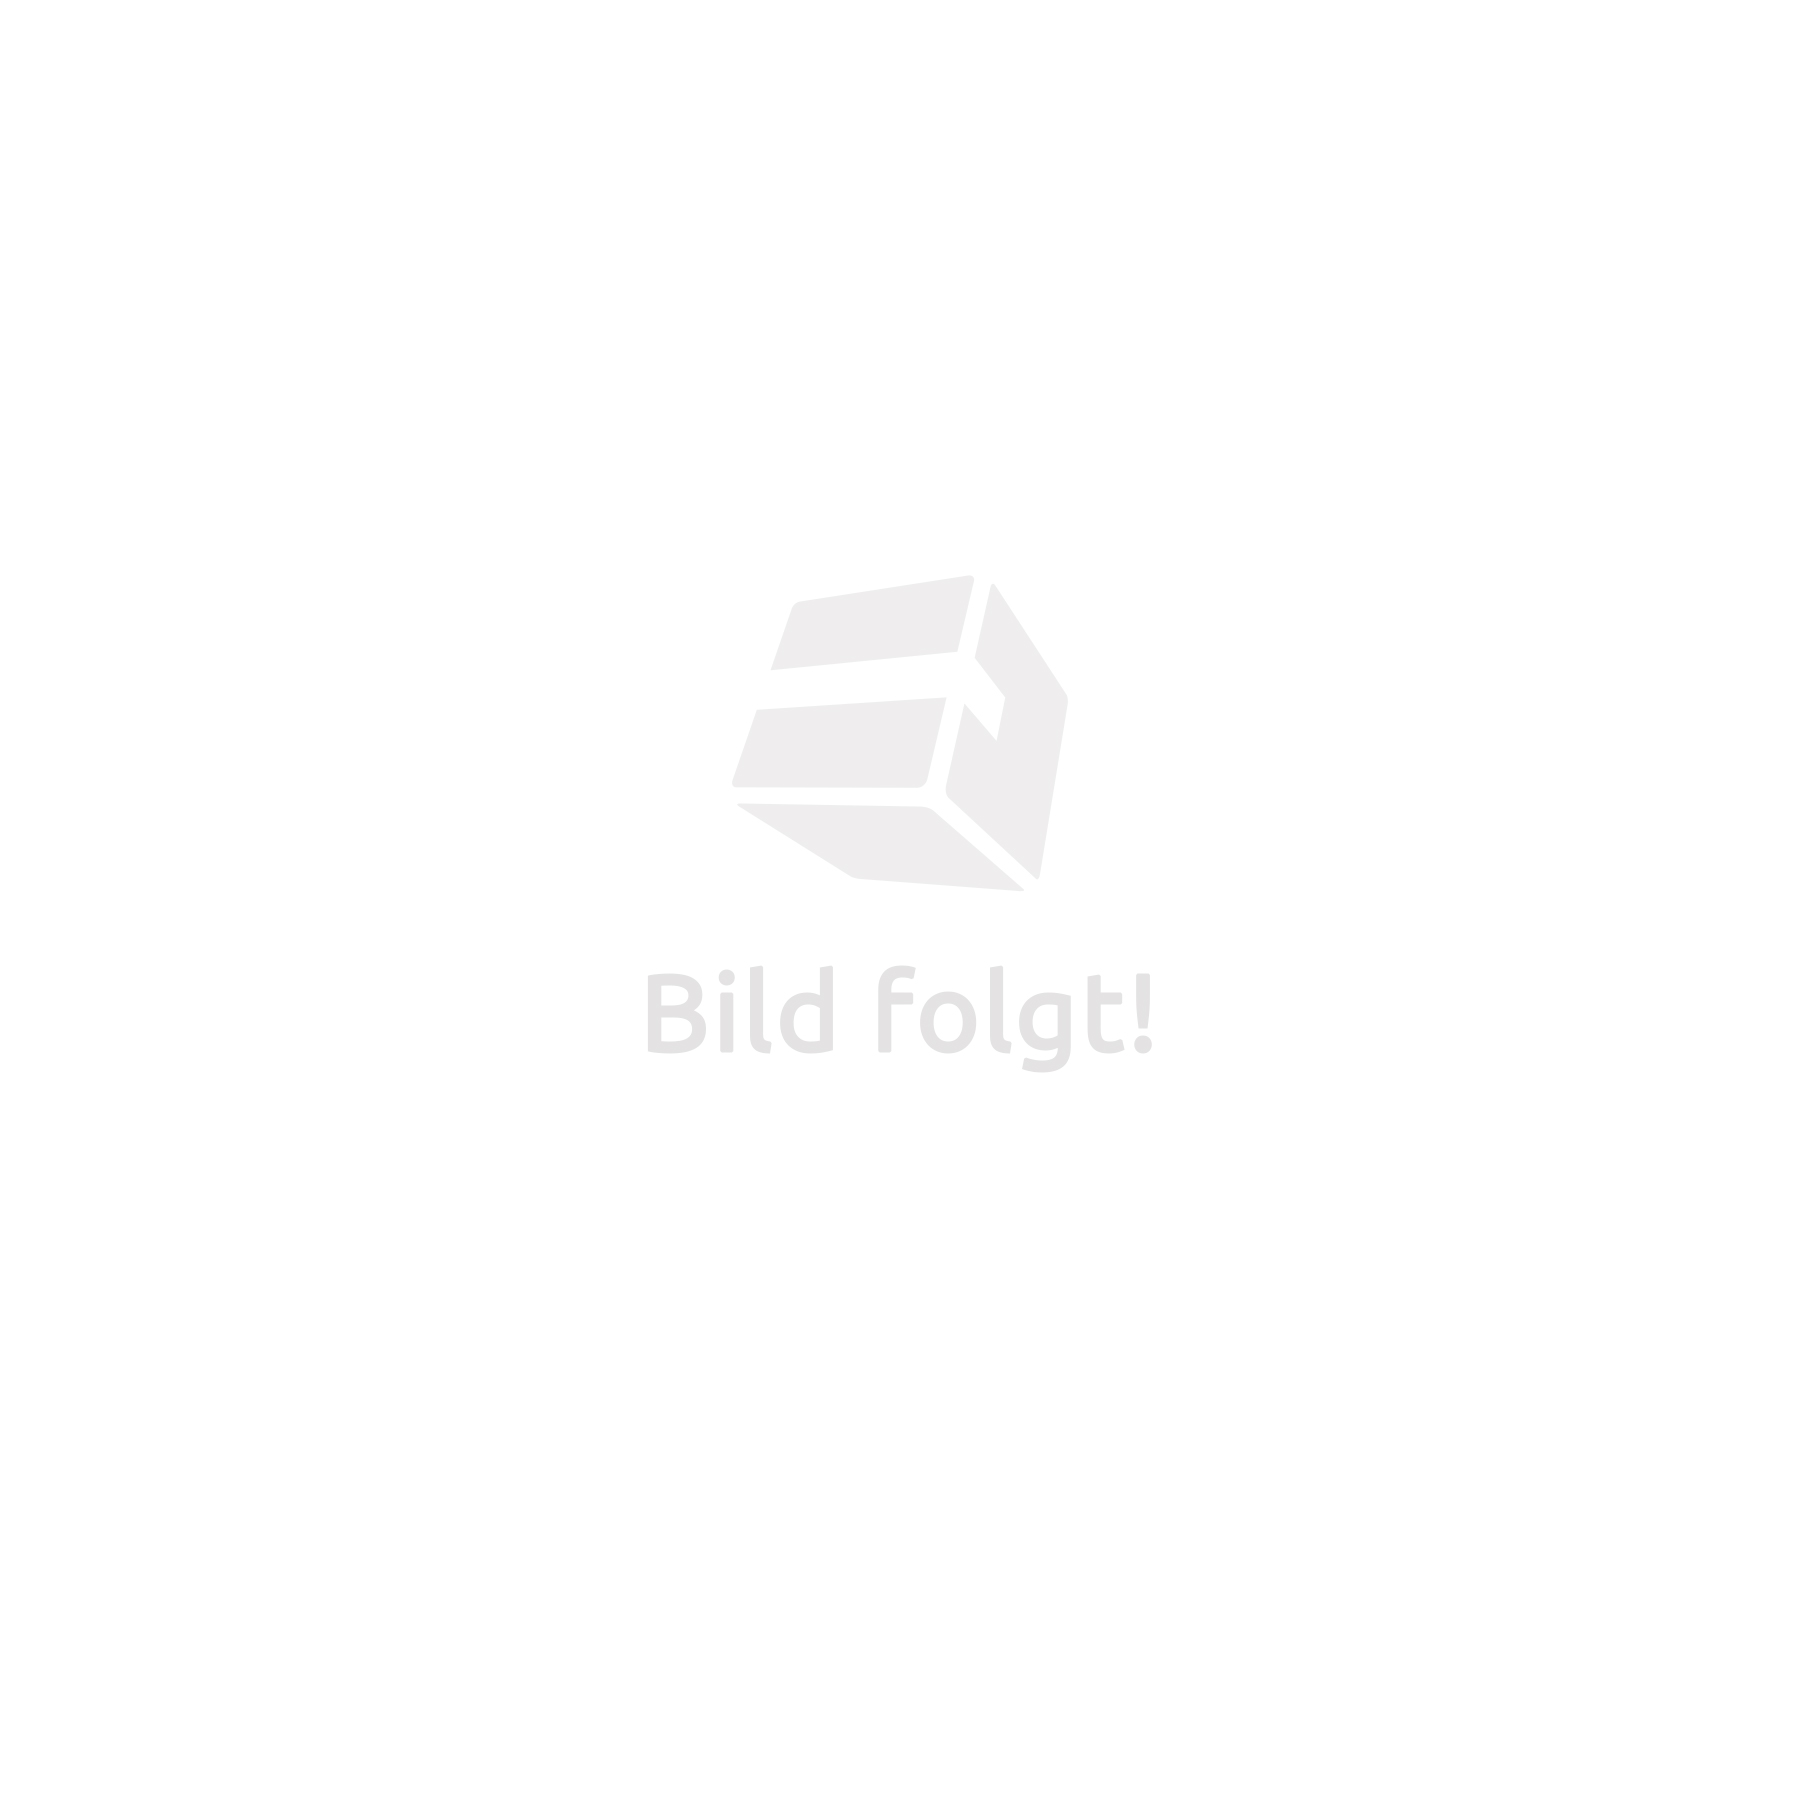 xxl steckregal schrank kunststoff garderobe kleiderschrank diy 147x47x183 schwar ebay. Black Bedroom Furniture Sets. Home Design Ideas